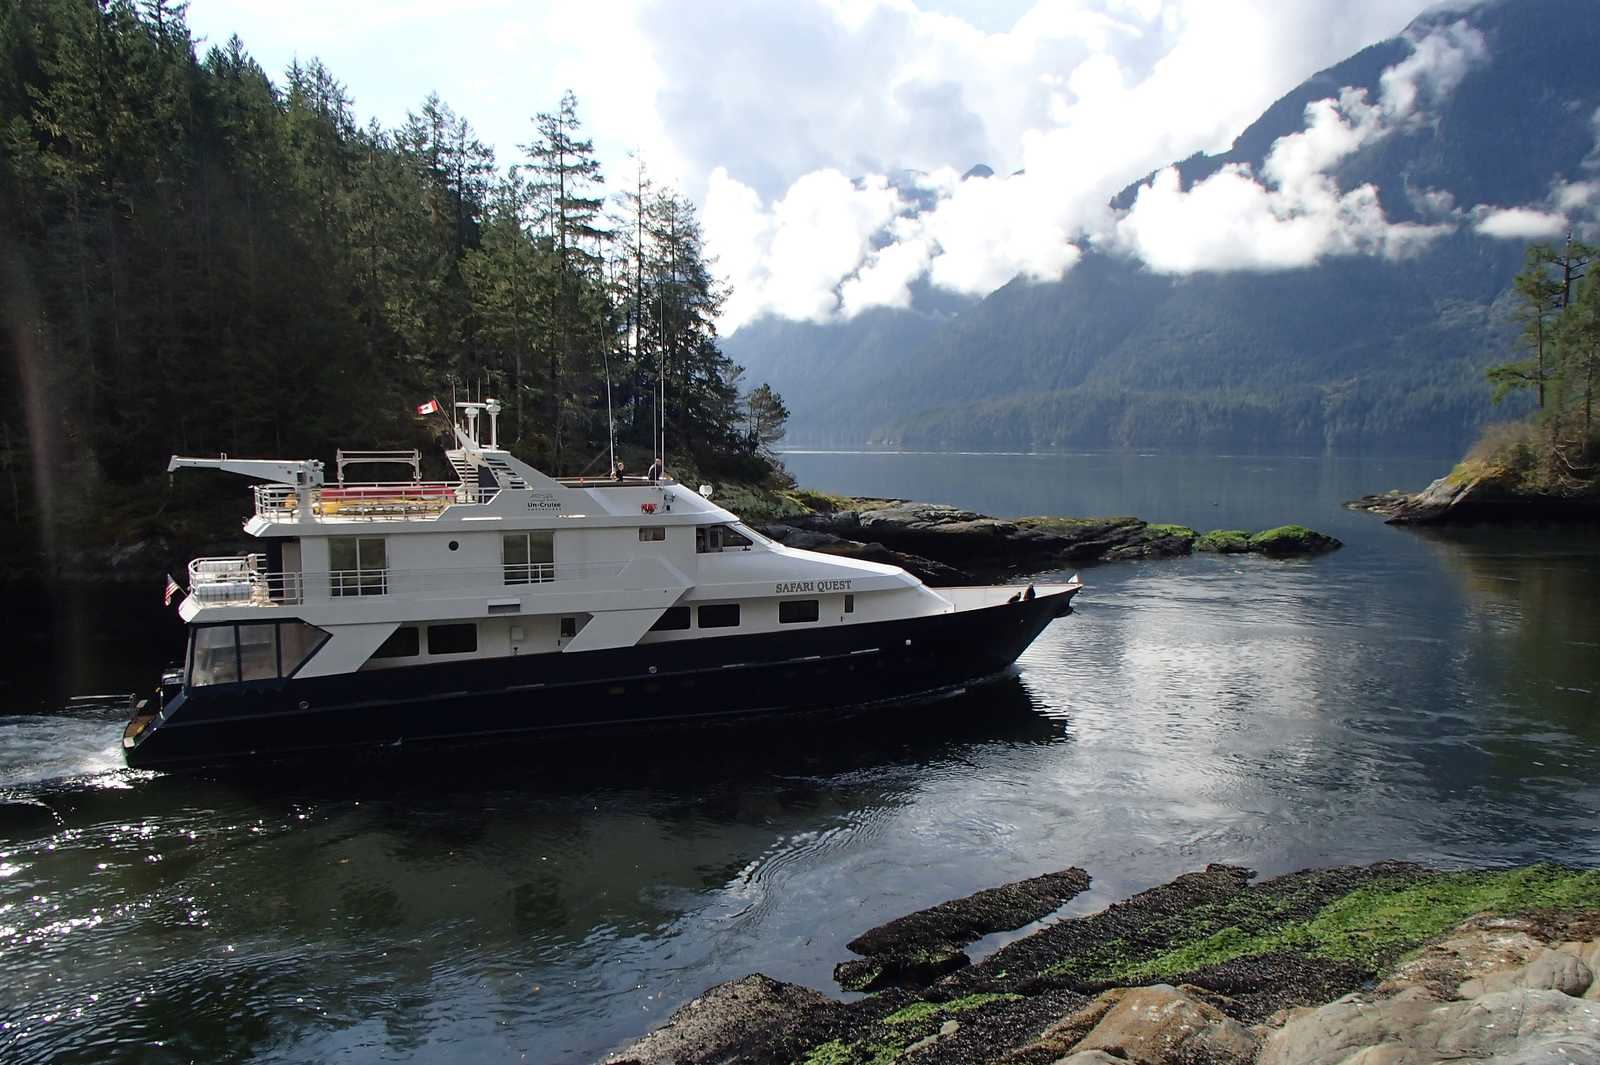 Die Safari Quest im Princess Louisa Inlet